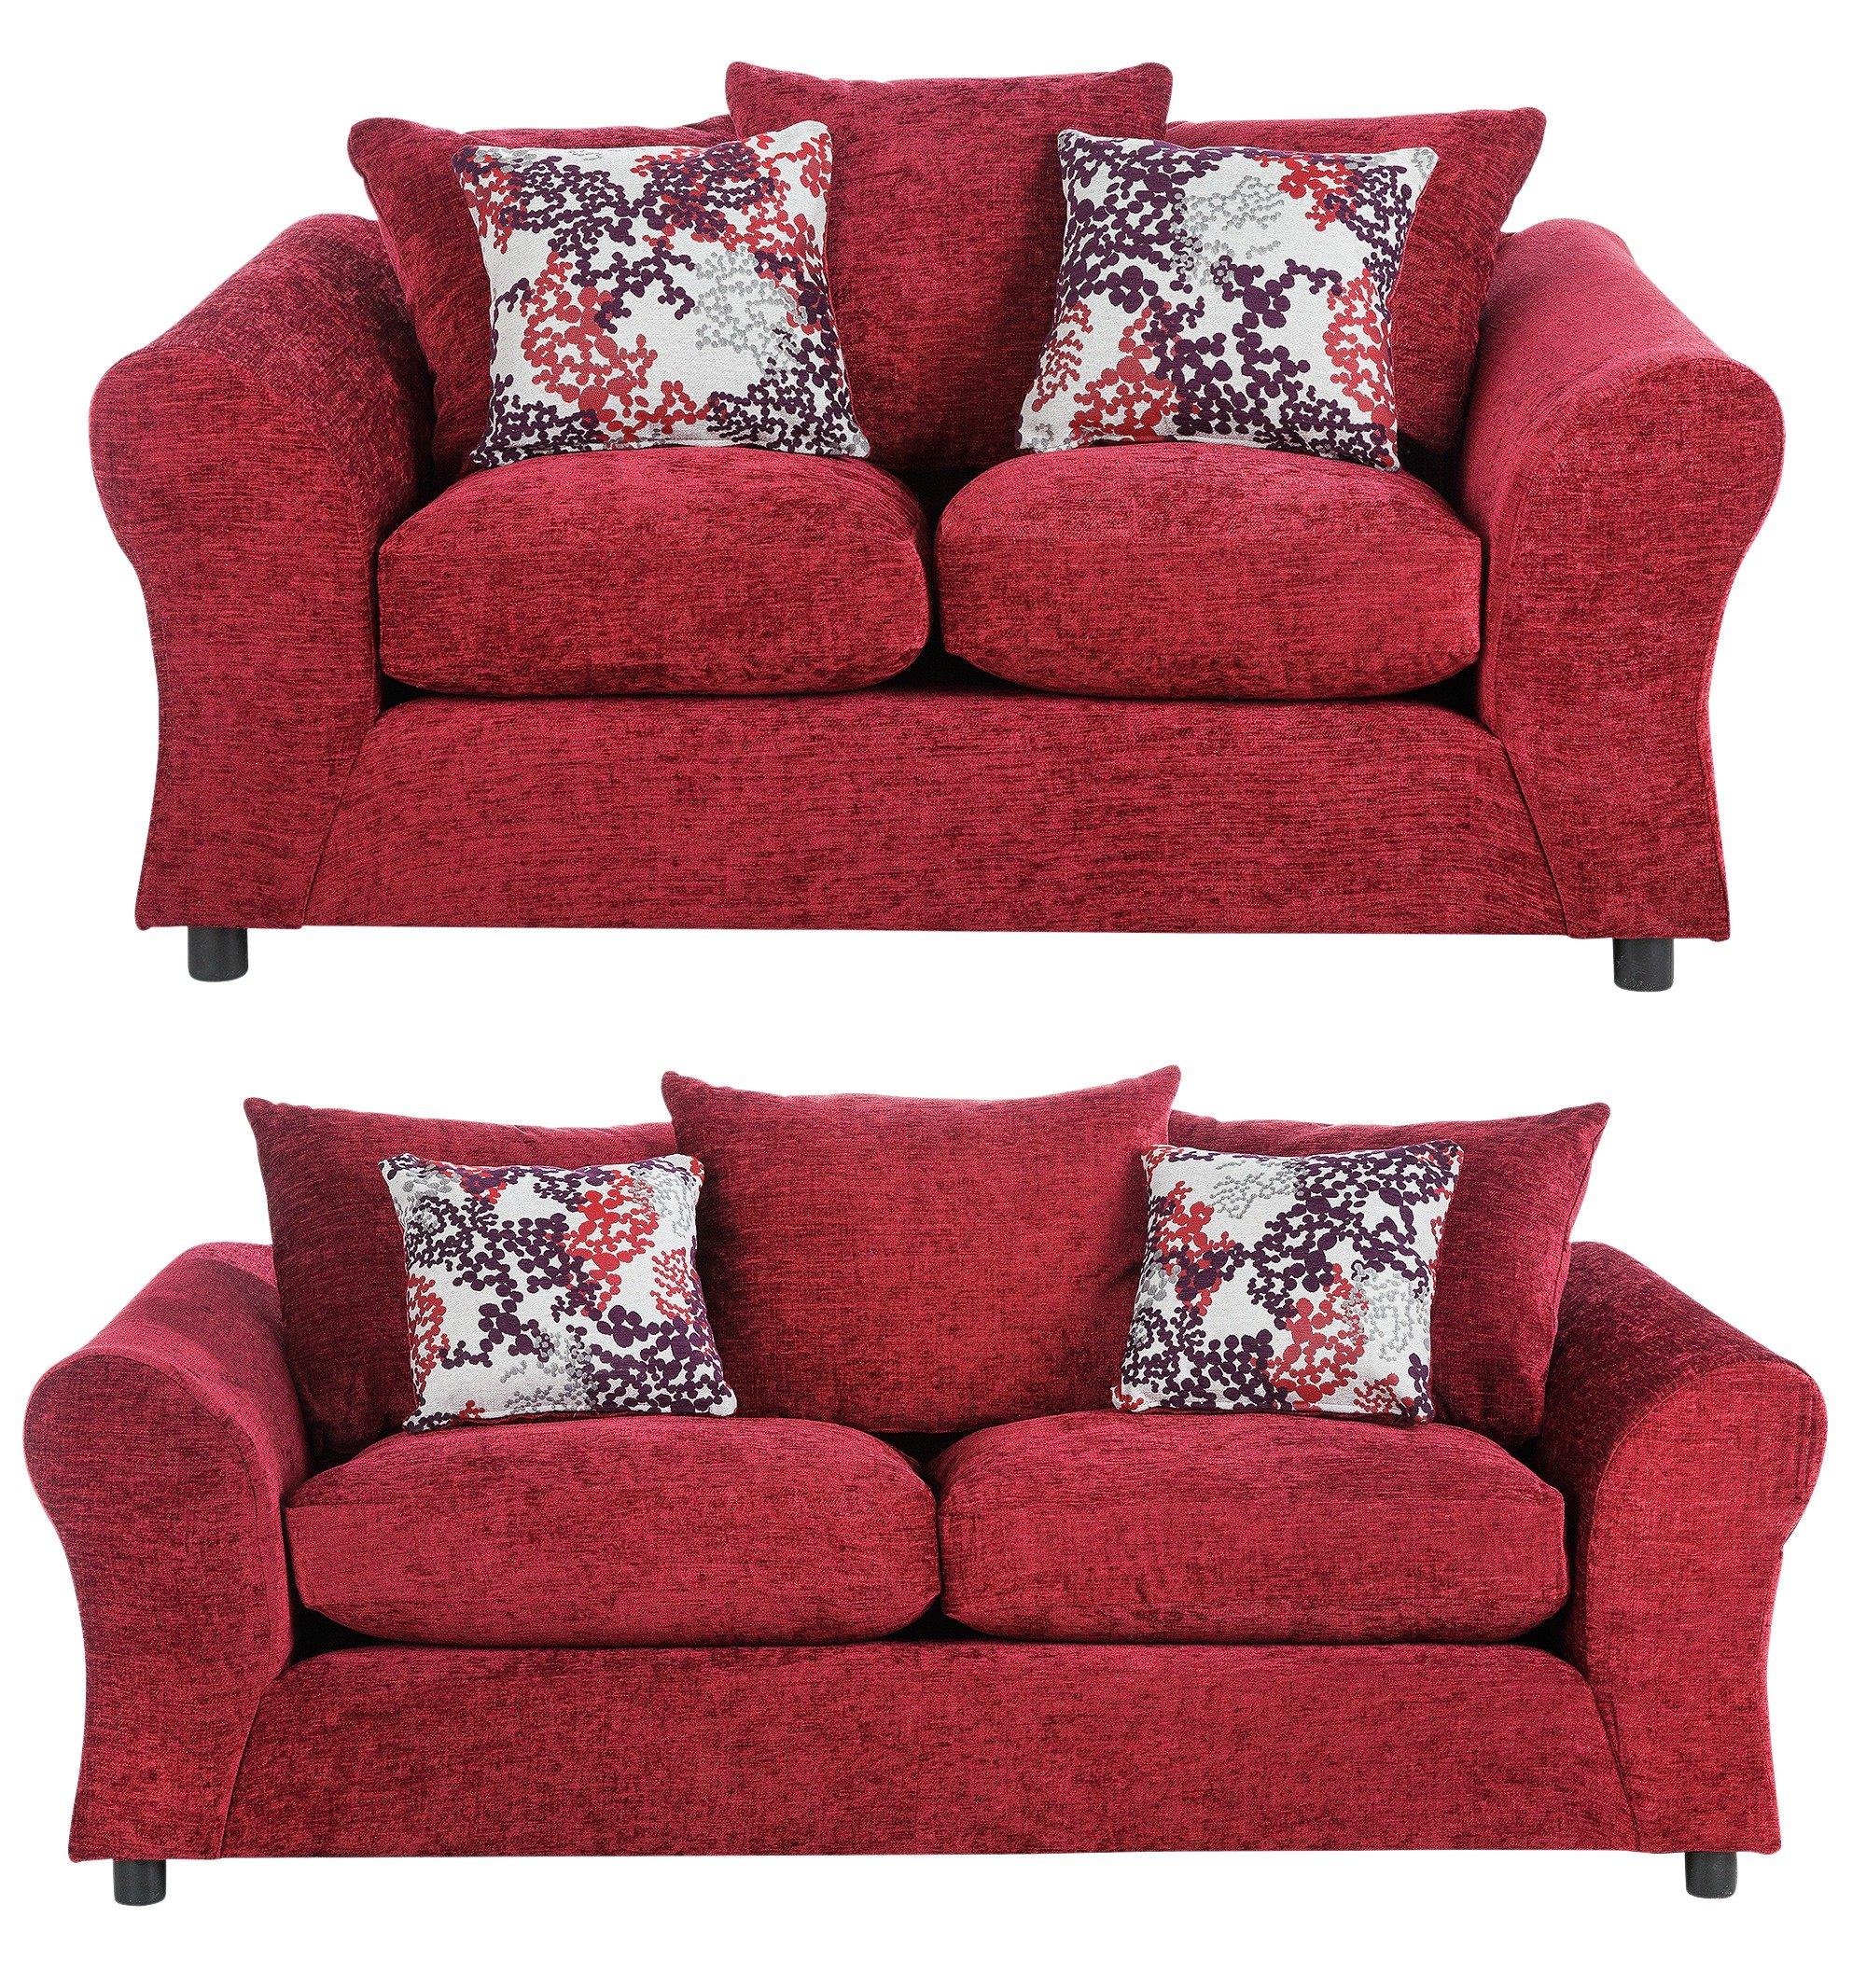 average weight of a large sofa contemporary italian design franco sectional home clara and regular fabric red 649